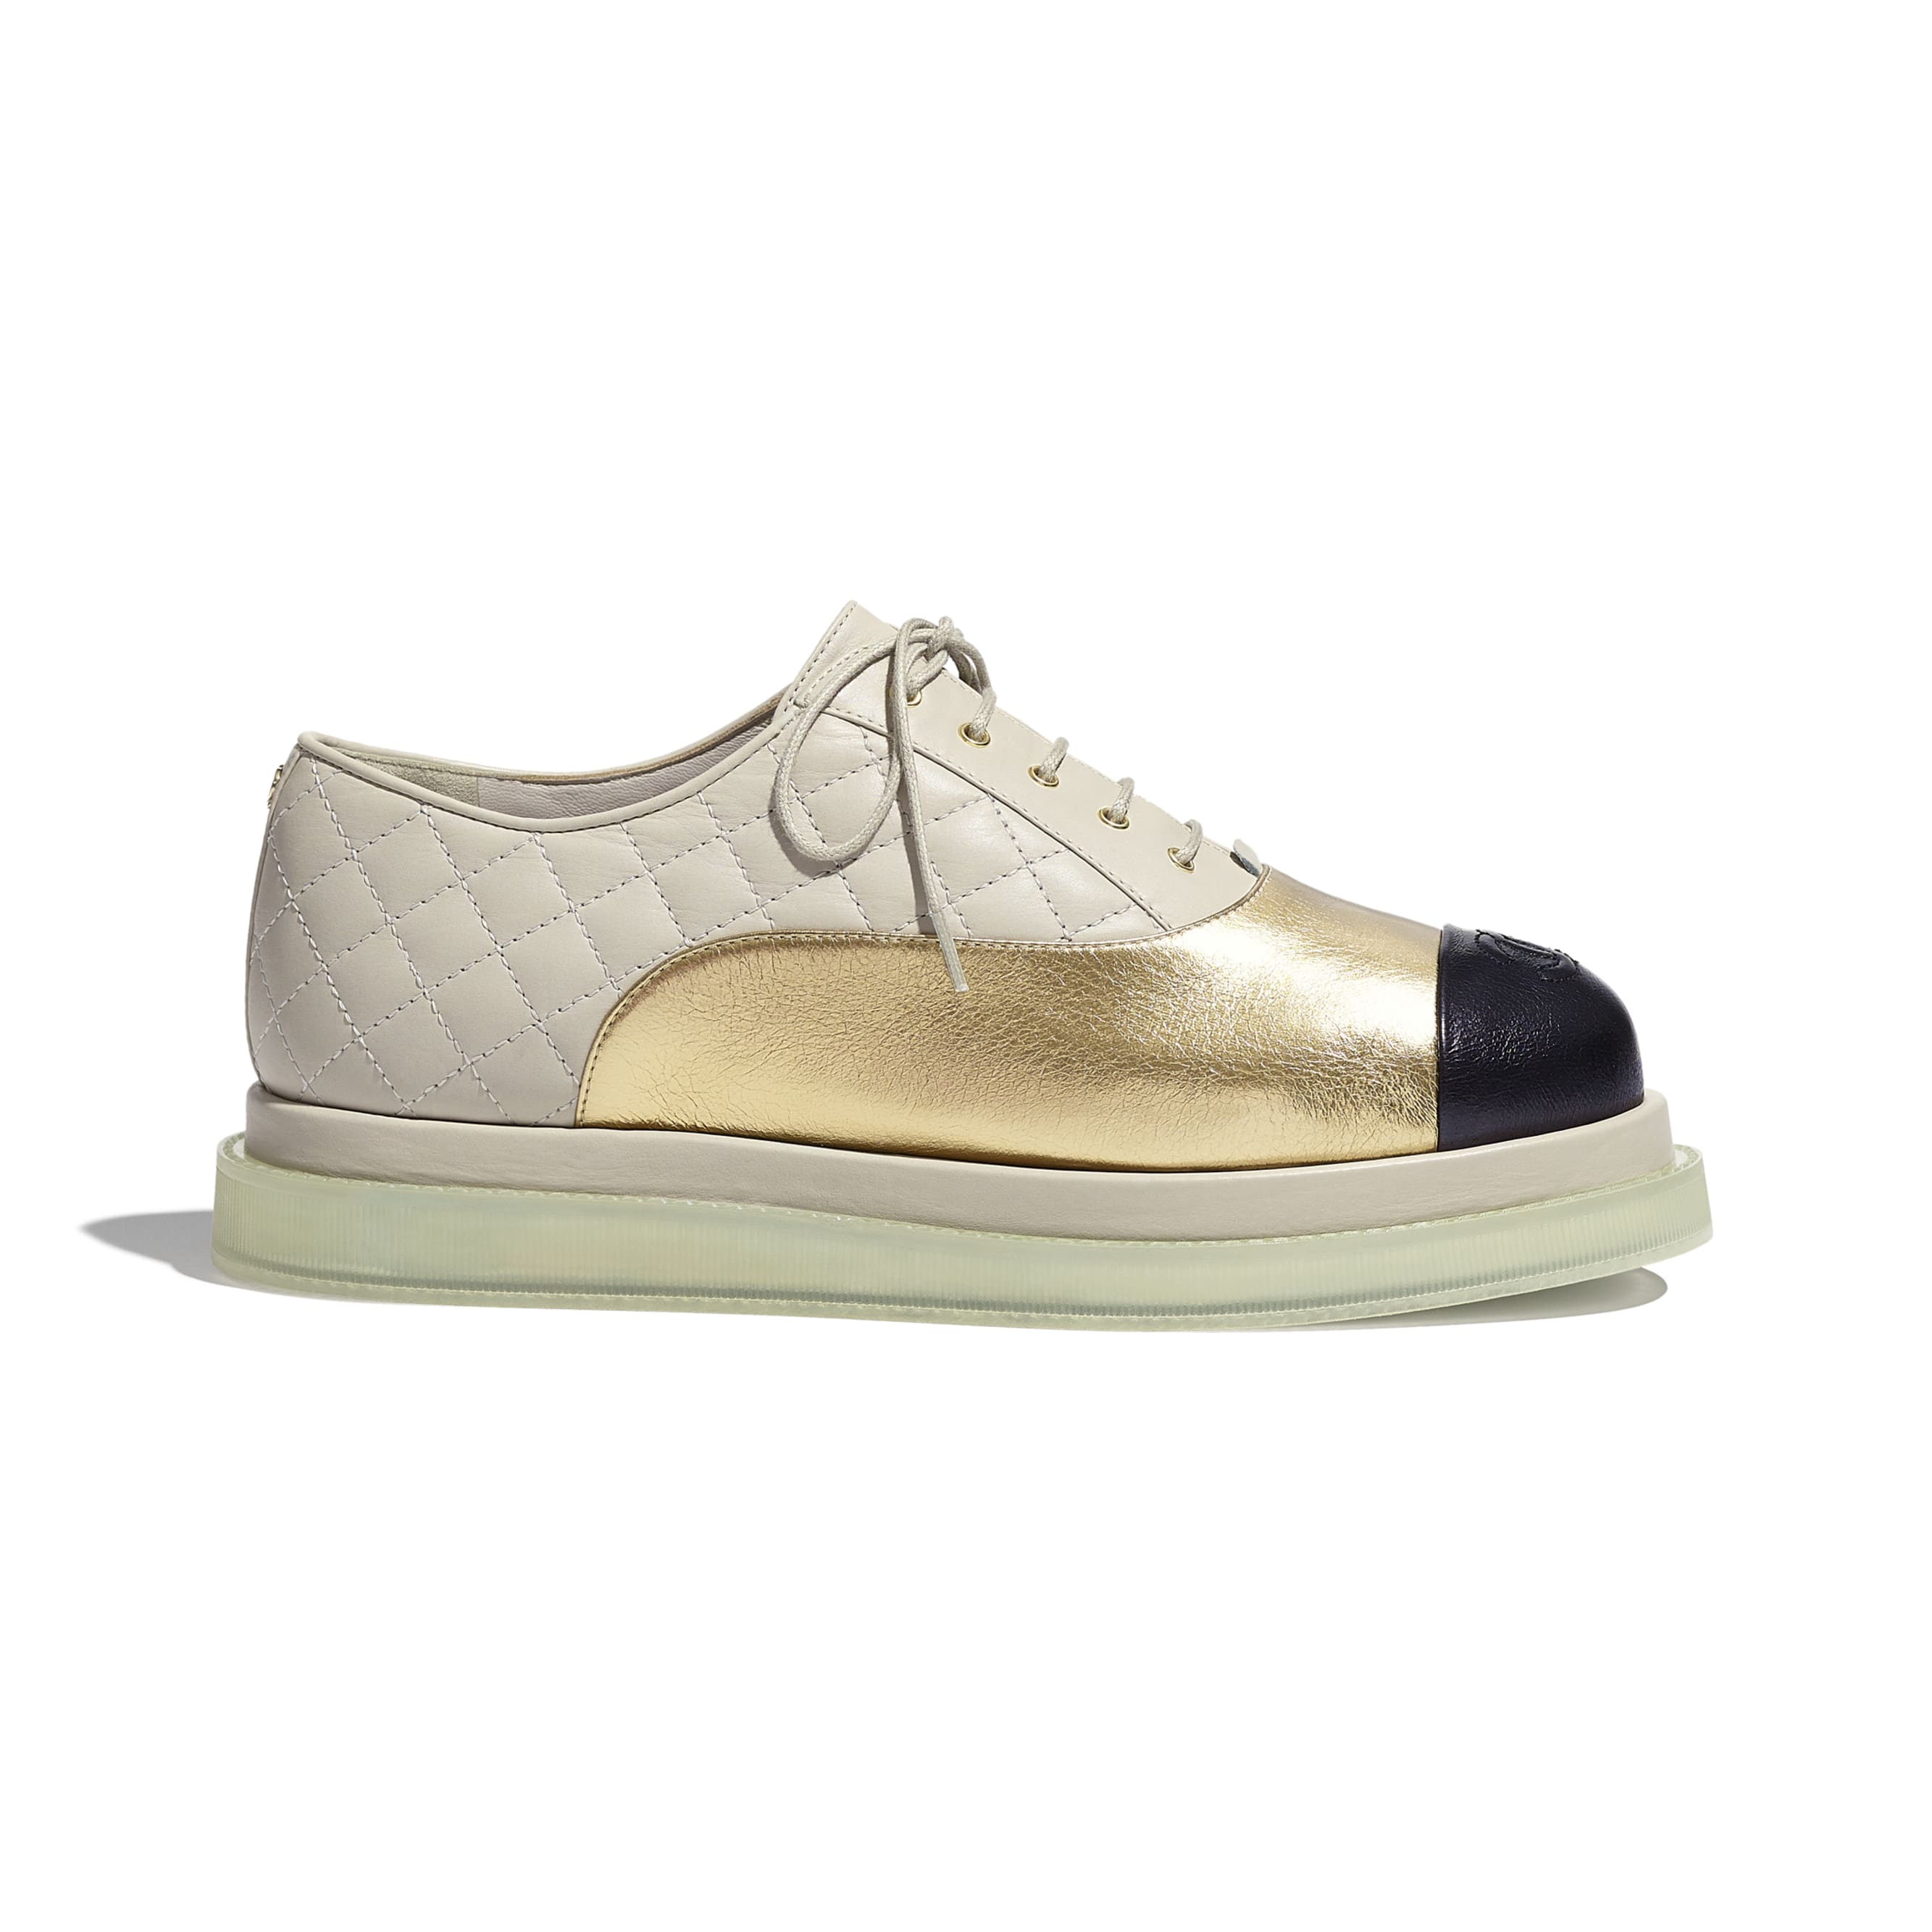 Lace Up - Gold, Light Beige & Black - Laminated Goatskin & Calfskin  - CHANEL - Default view - see standard sized version